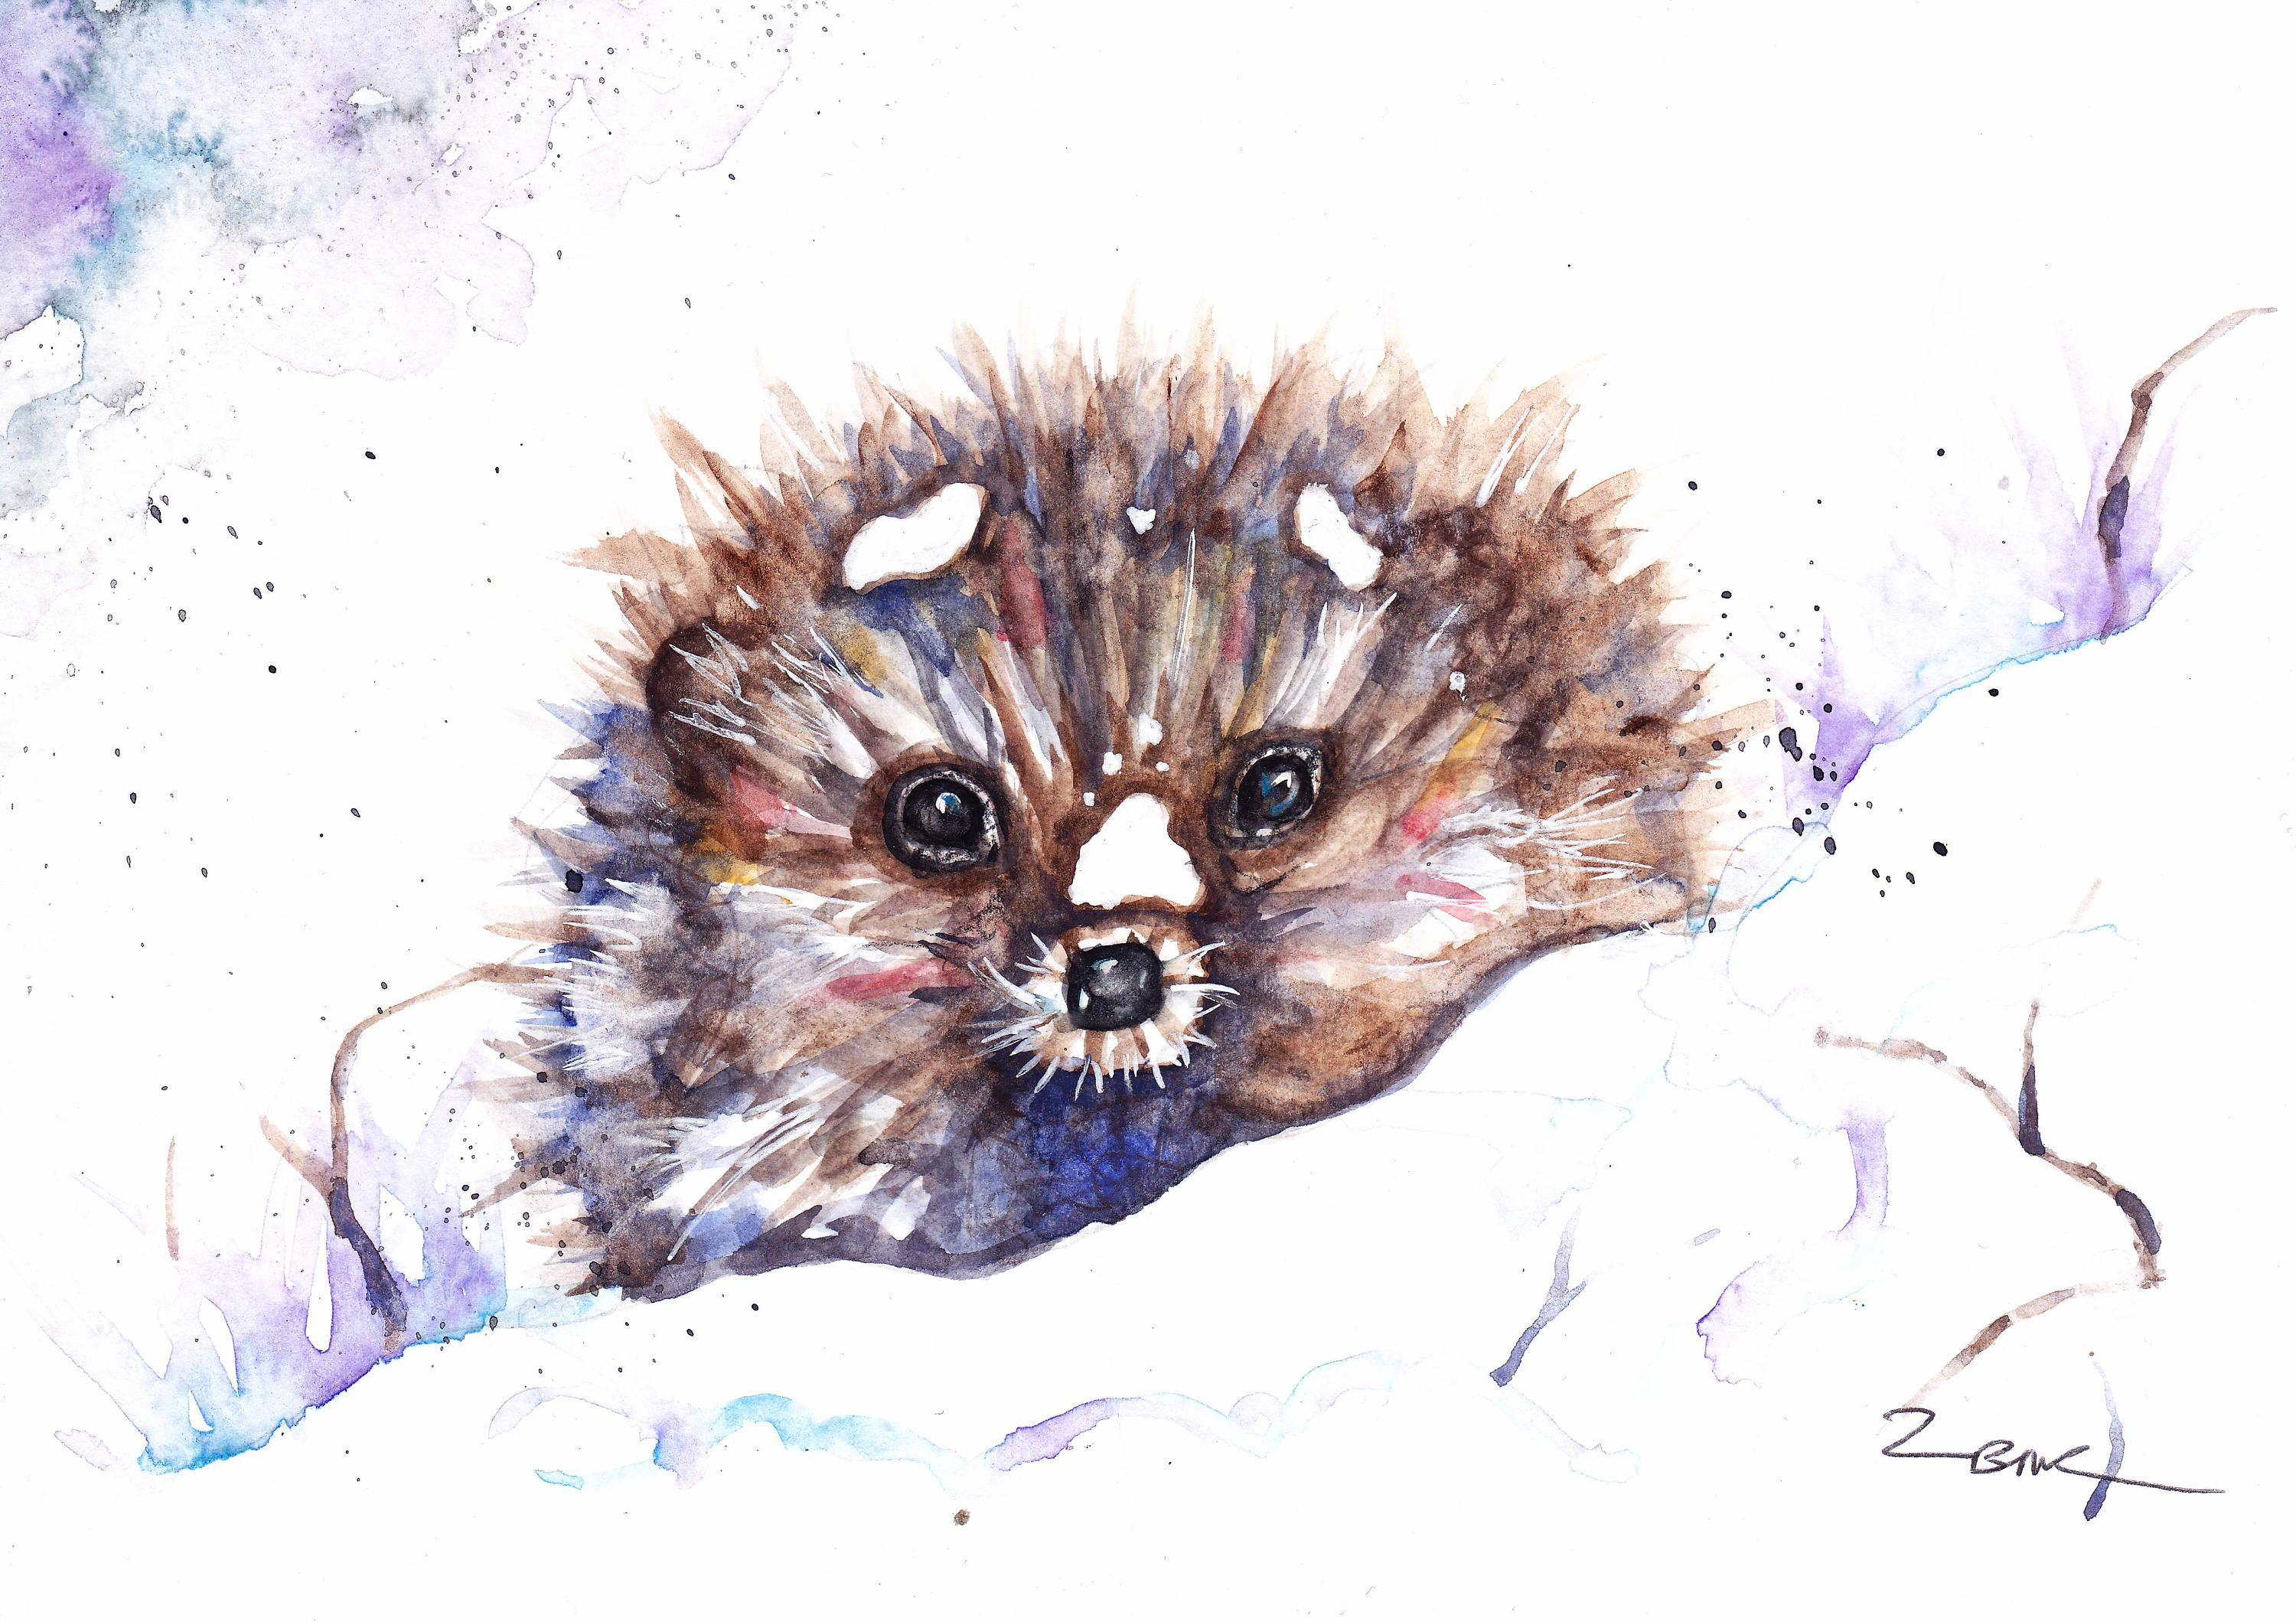 wall Sale,Original Print Gift Card Watercolour Bee Wildlife,Animal,Art